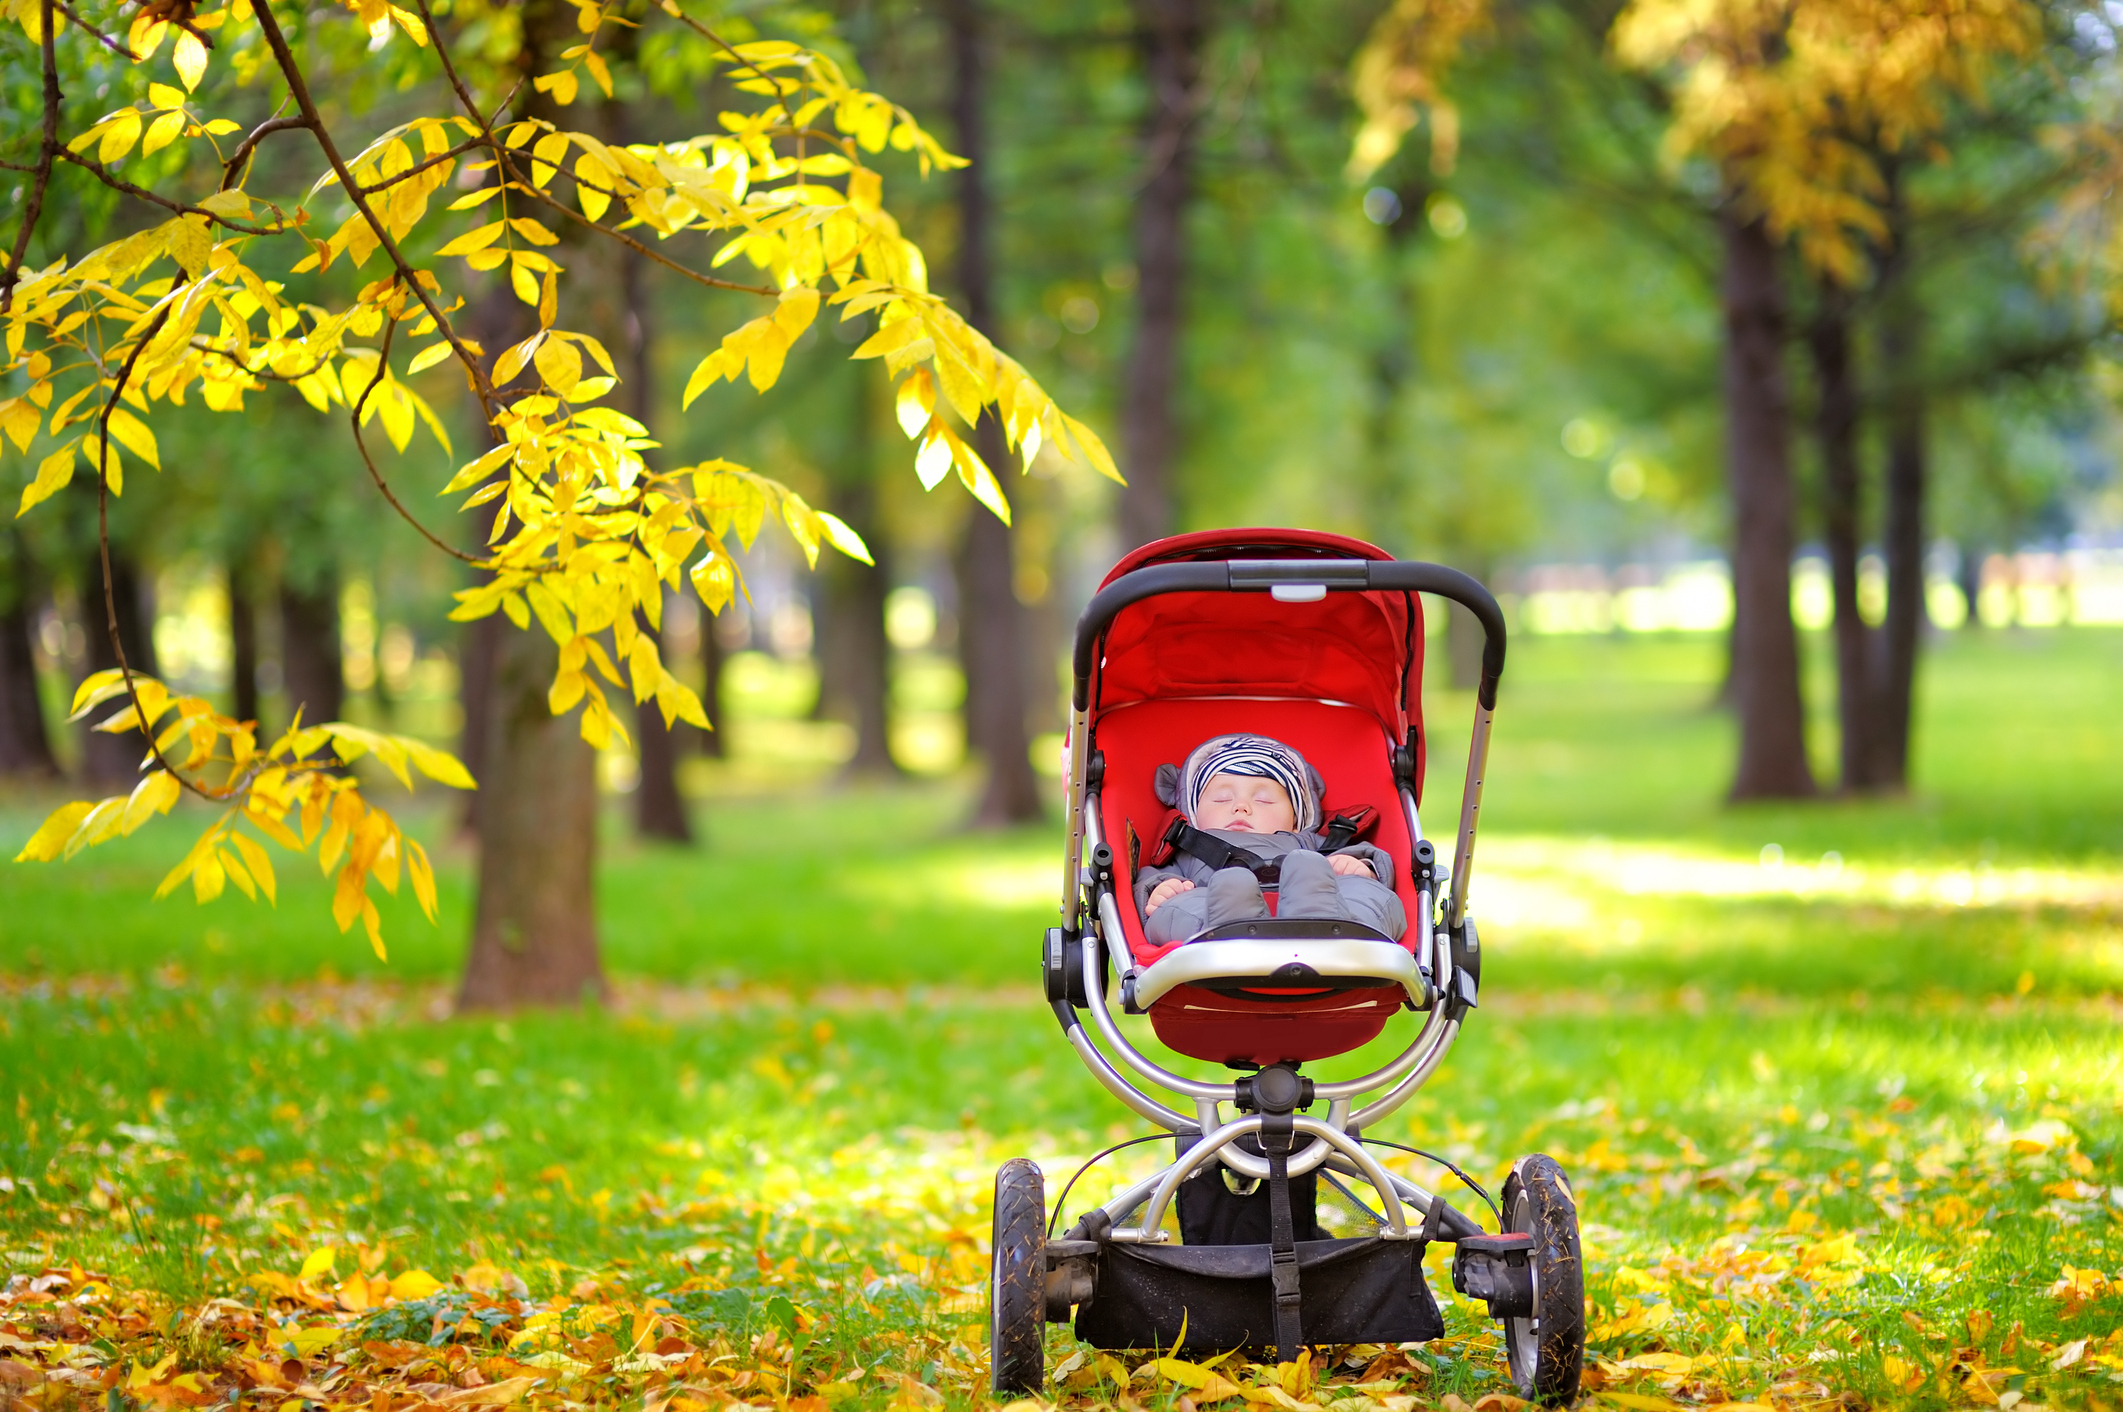 A baby in a pram in a park (Thinkstock/PA)